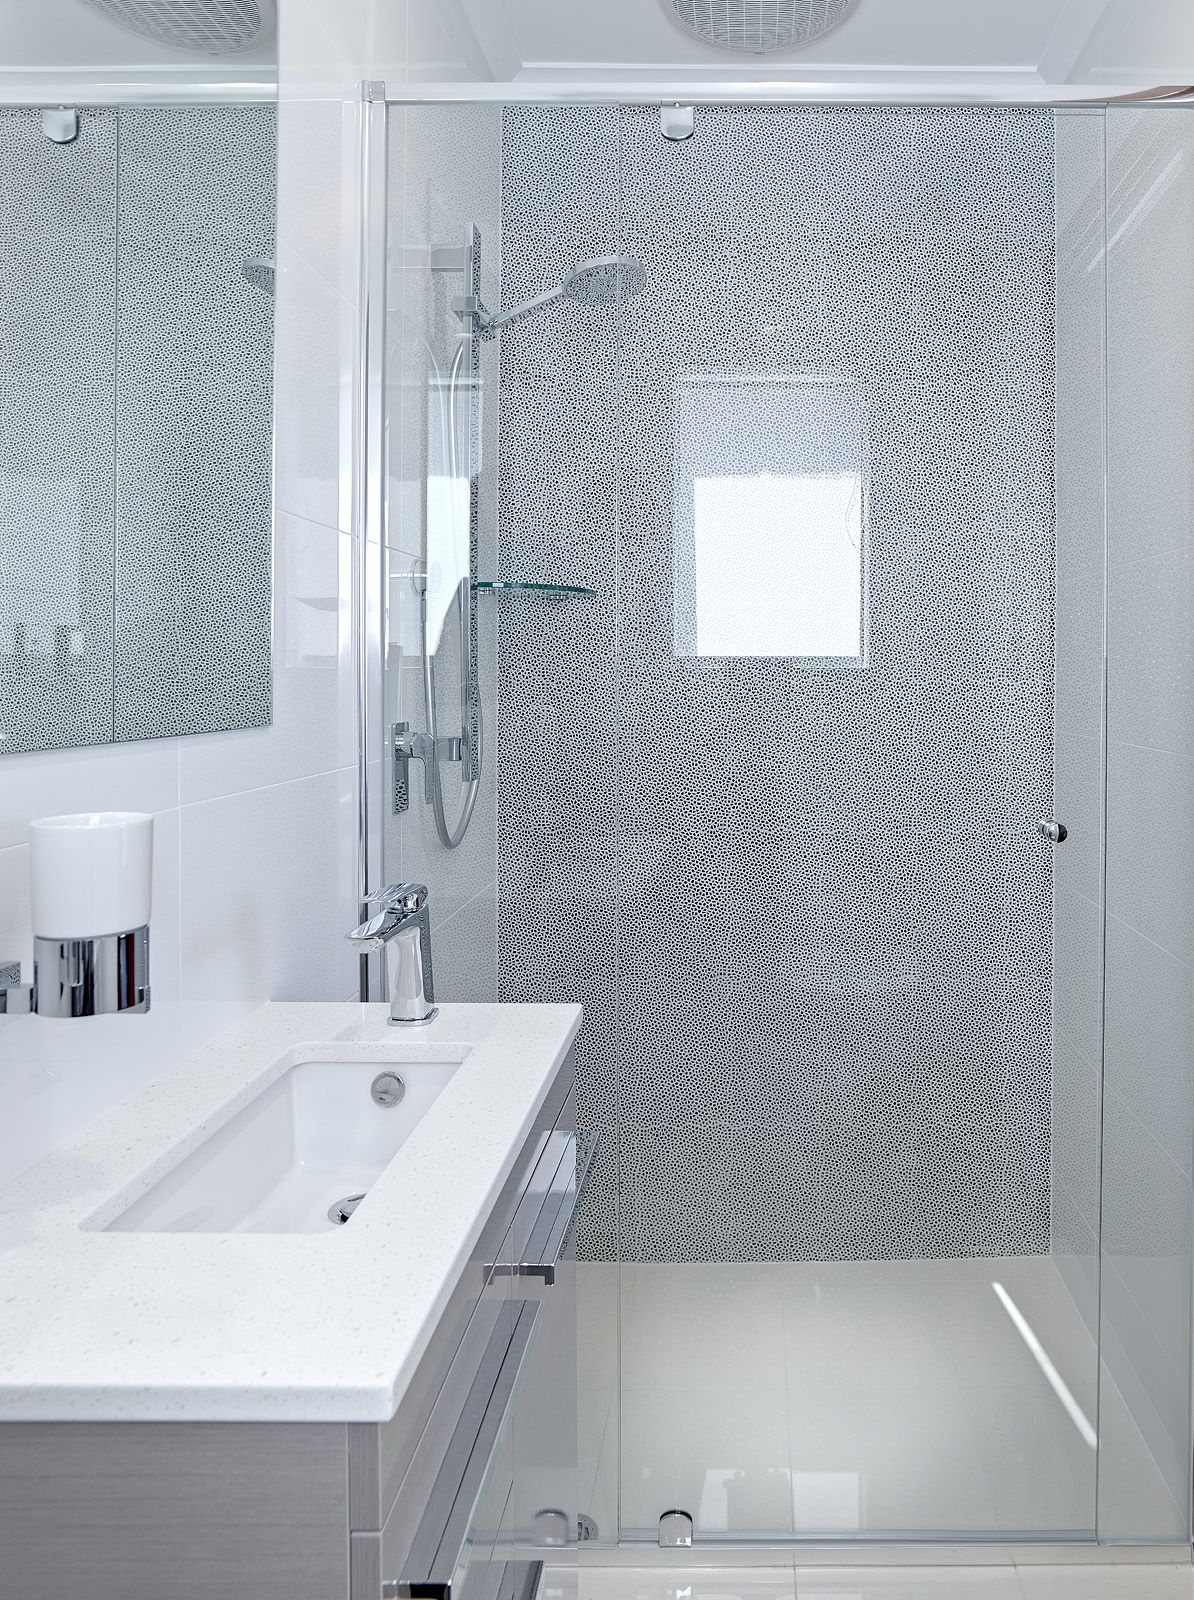 Bathroom Renovations Kingston Ontario: Elegant & Stylish Compact Ensuite Still Easily Fits A